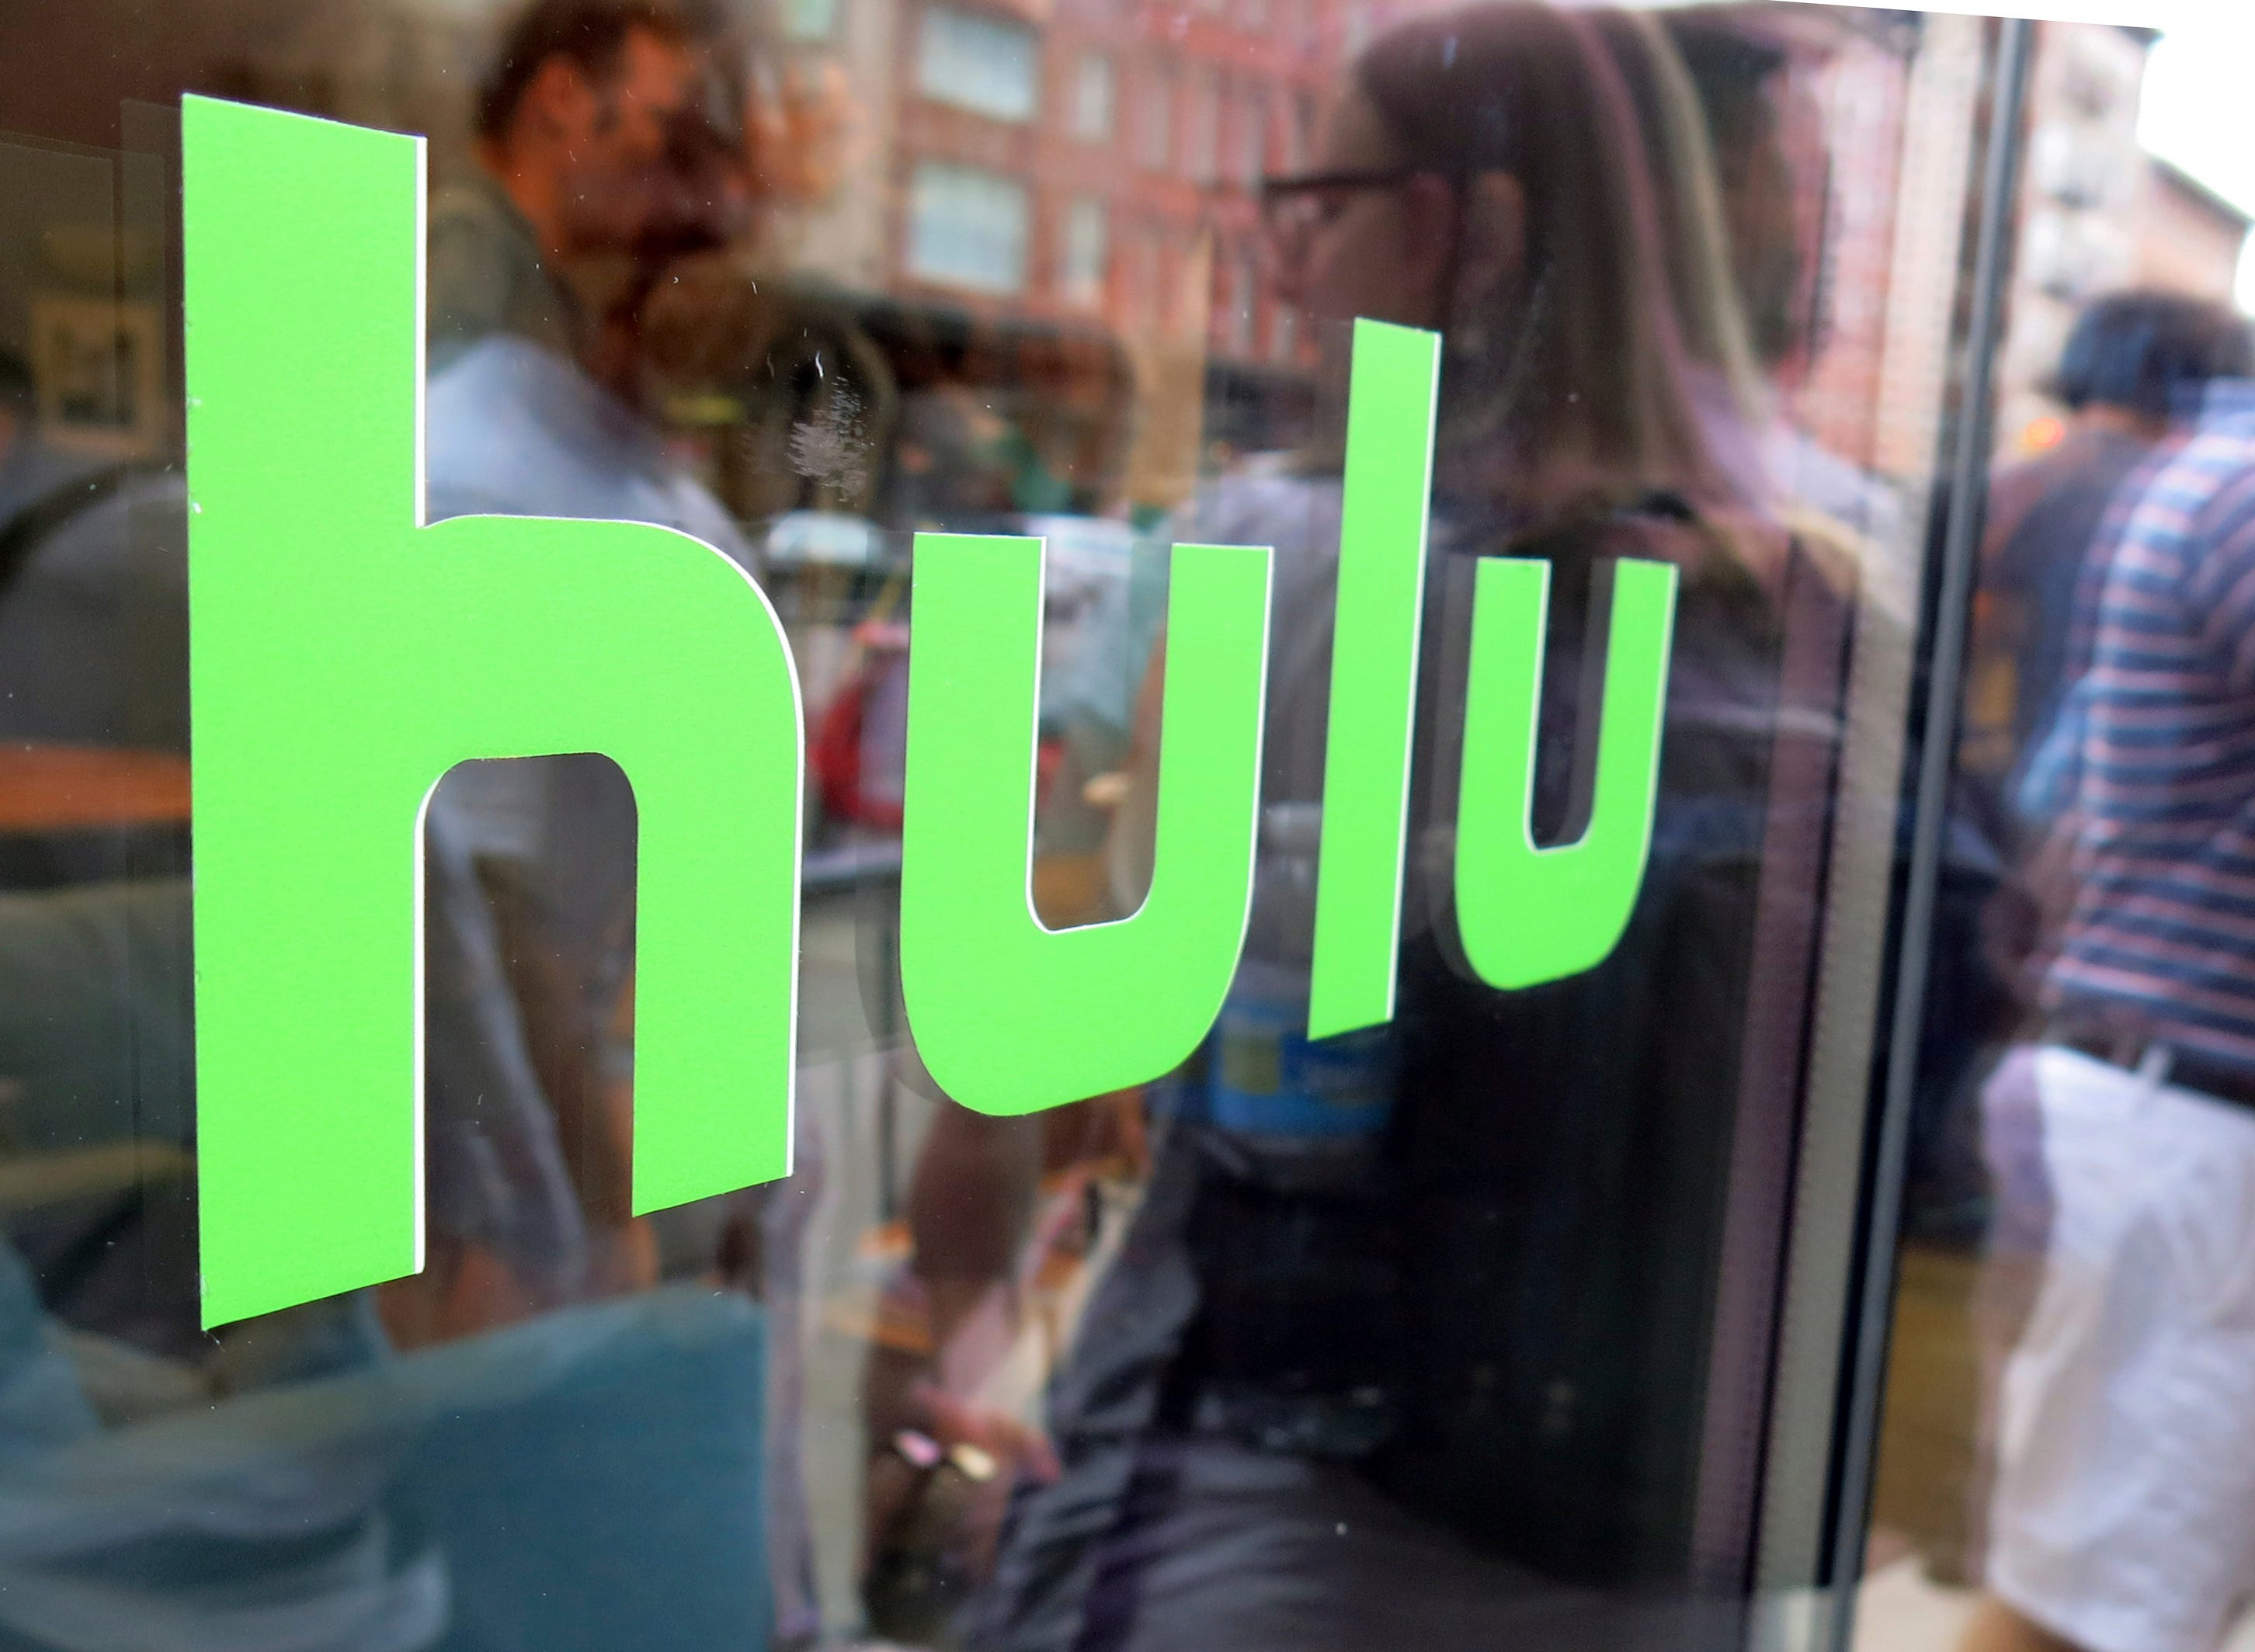 Disney takes over Hulu. What's it mean for cord cutters, binge watchers? Change is coming